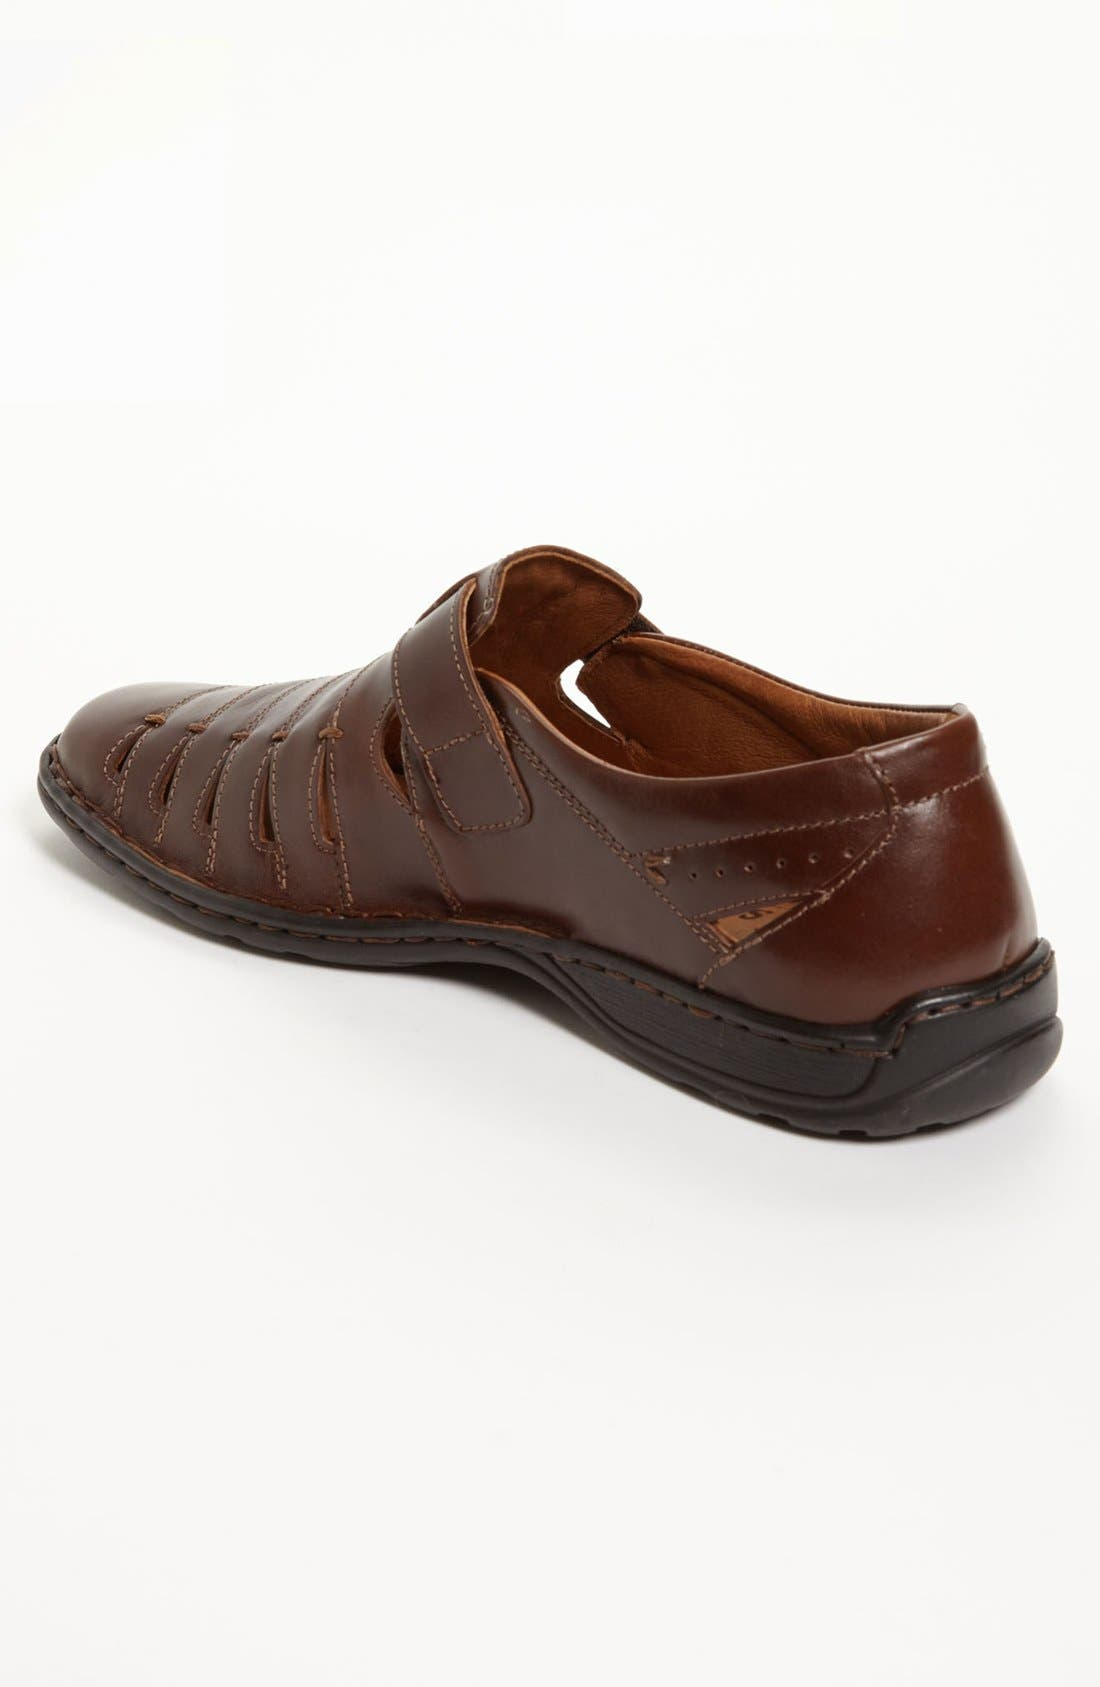 Alternate Image 2  - Josef Seibel 'Lionel 06' Sandal (Men)